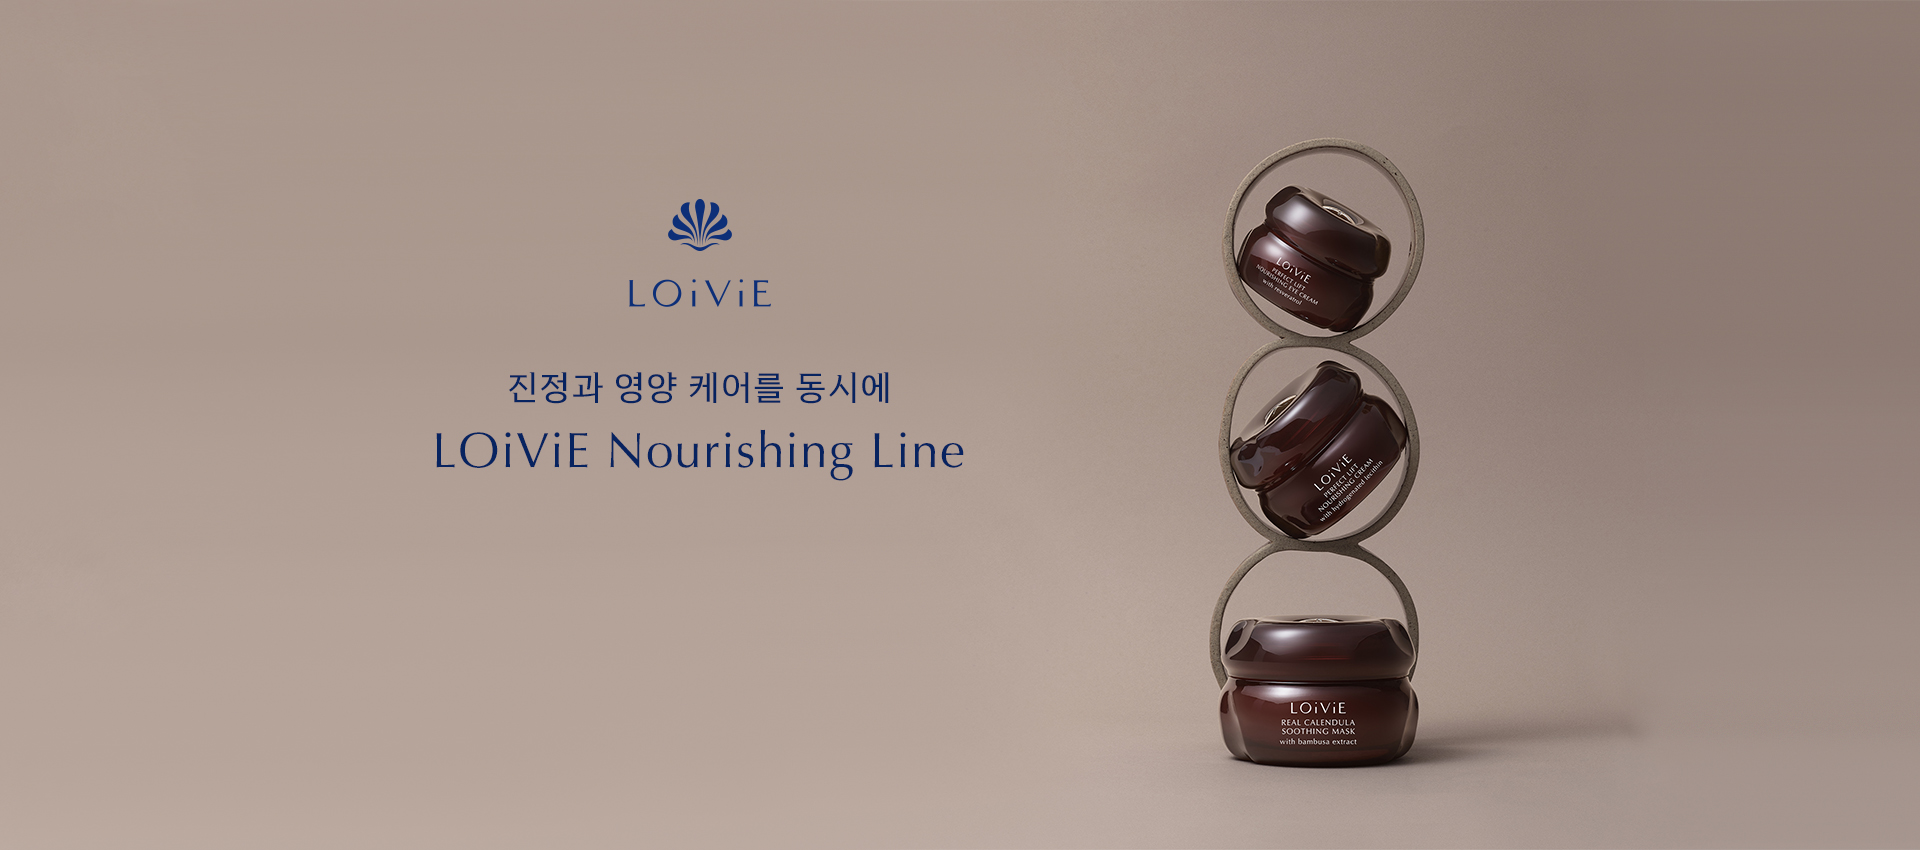 LOIVIE Nourishing (2)